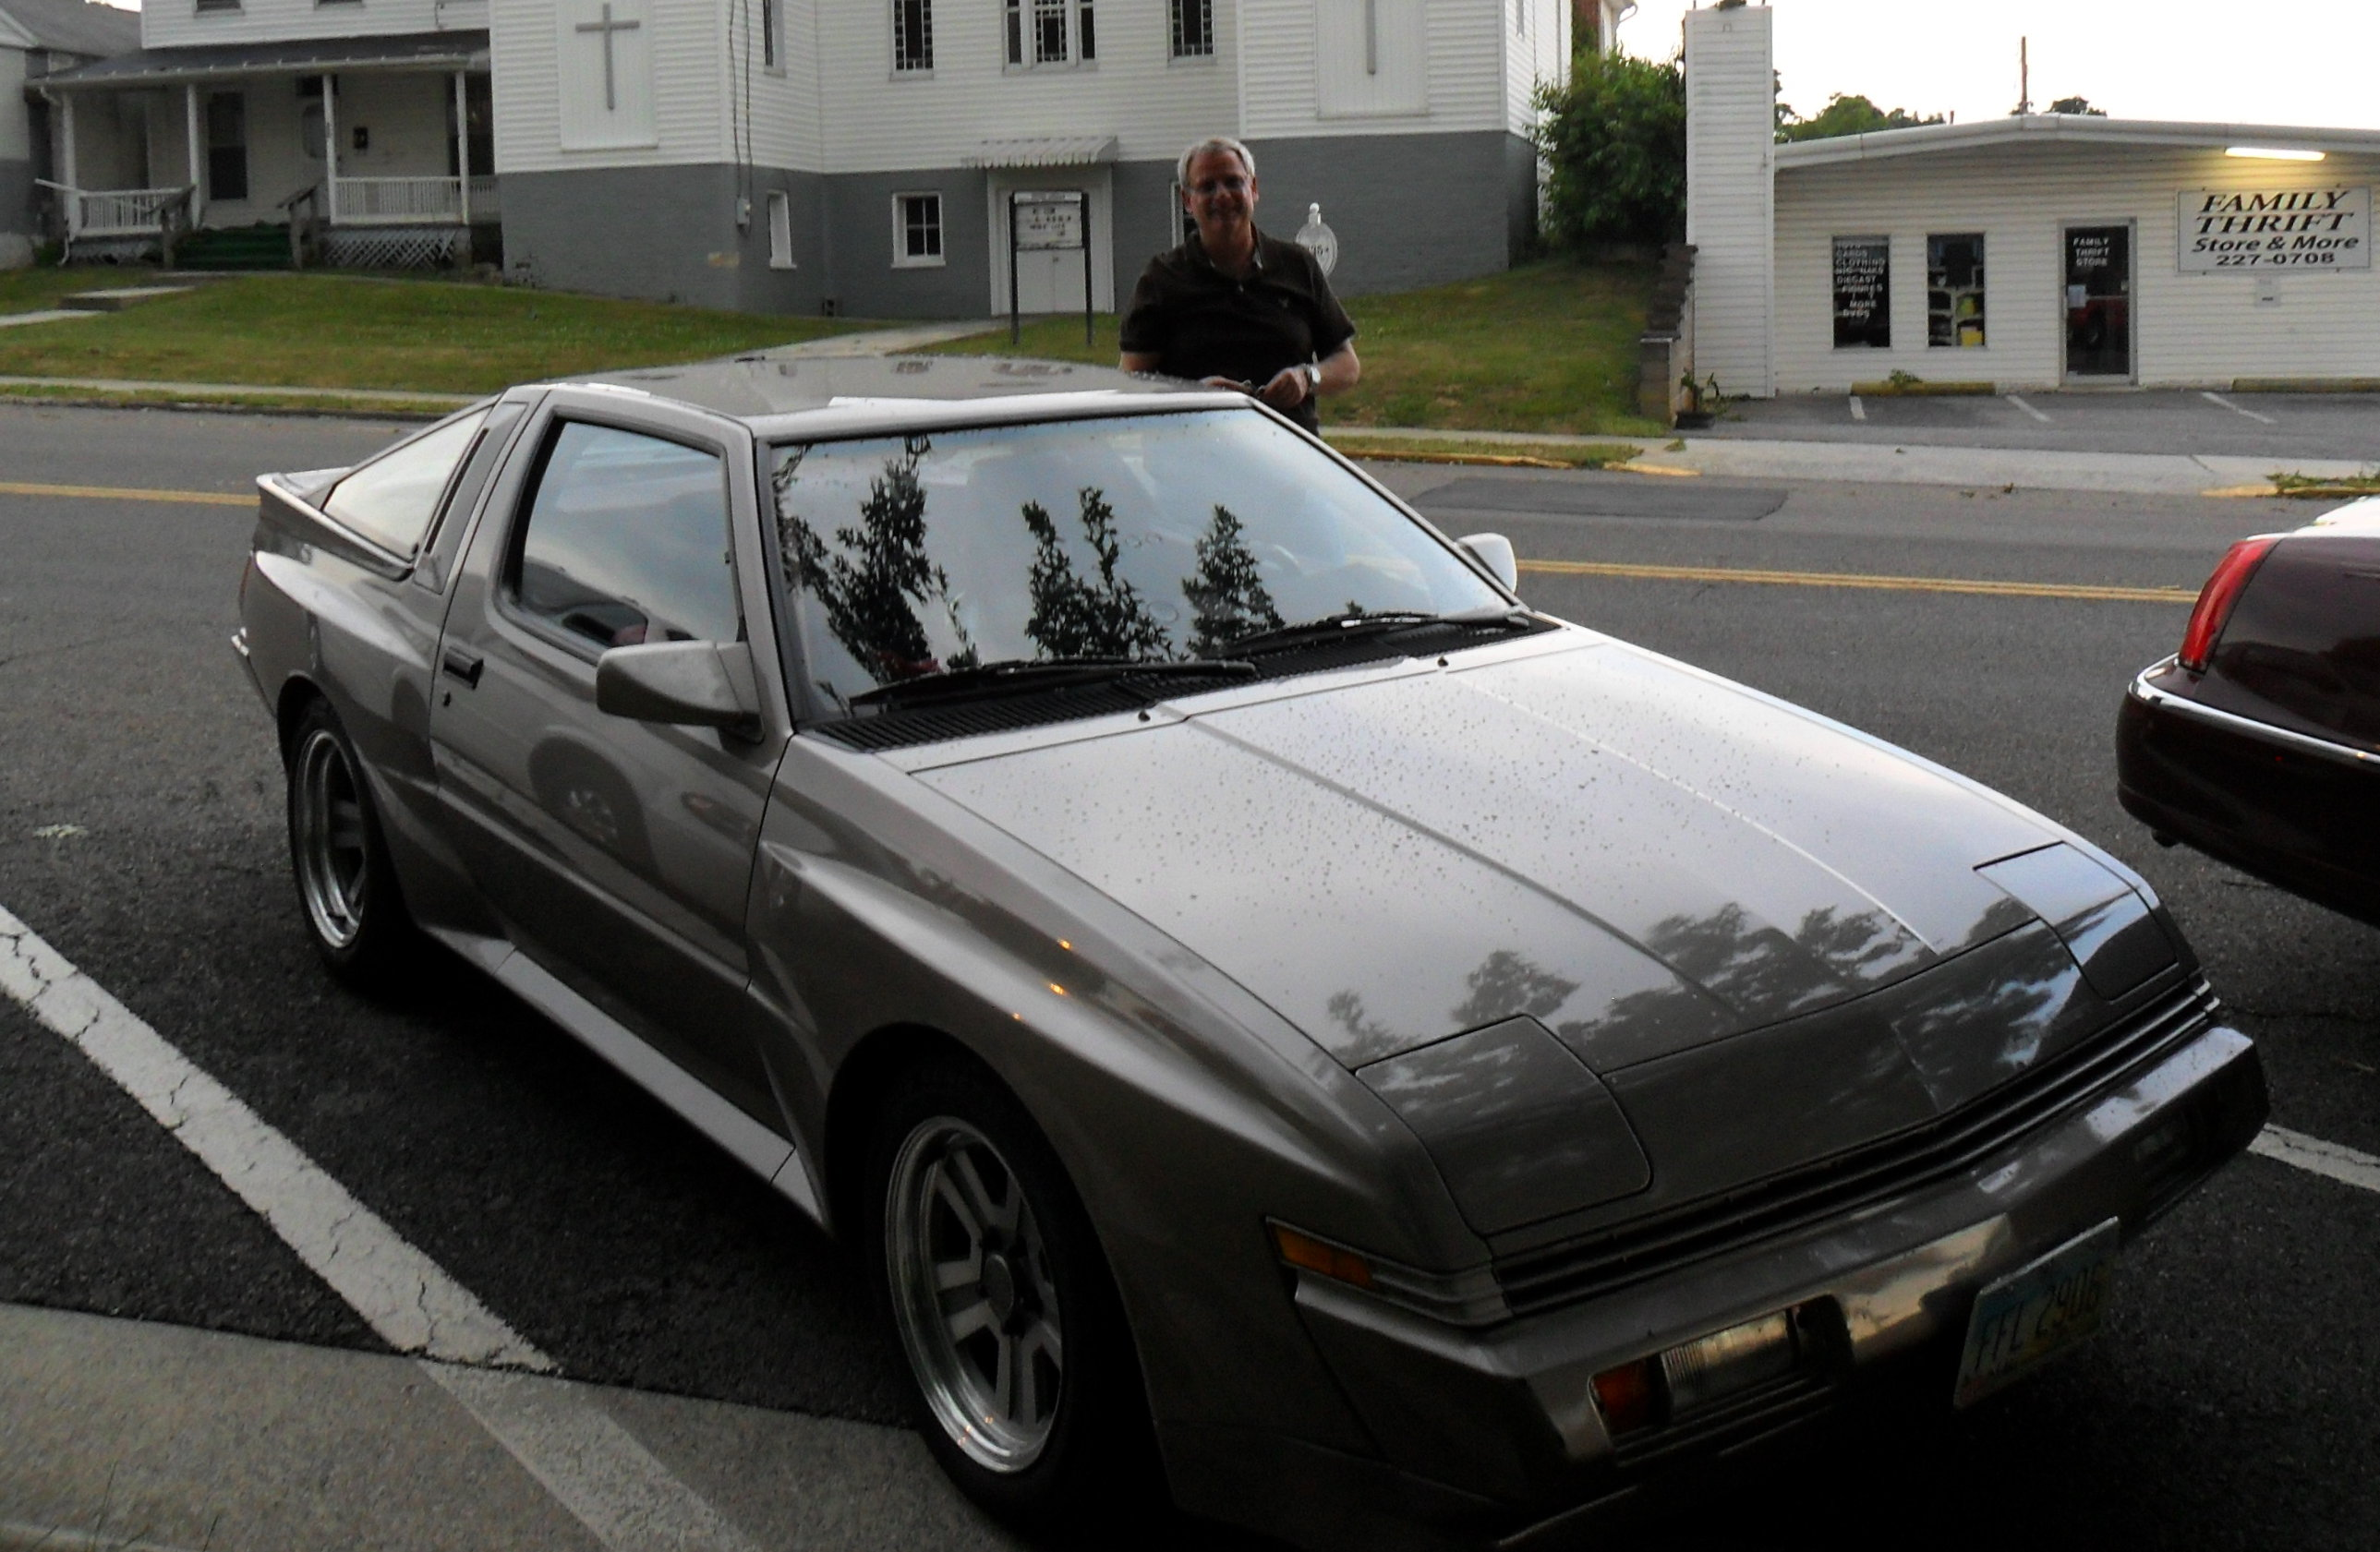 My Shetland Beige 1987 Chrysler Conquest